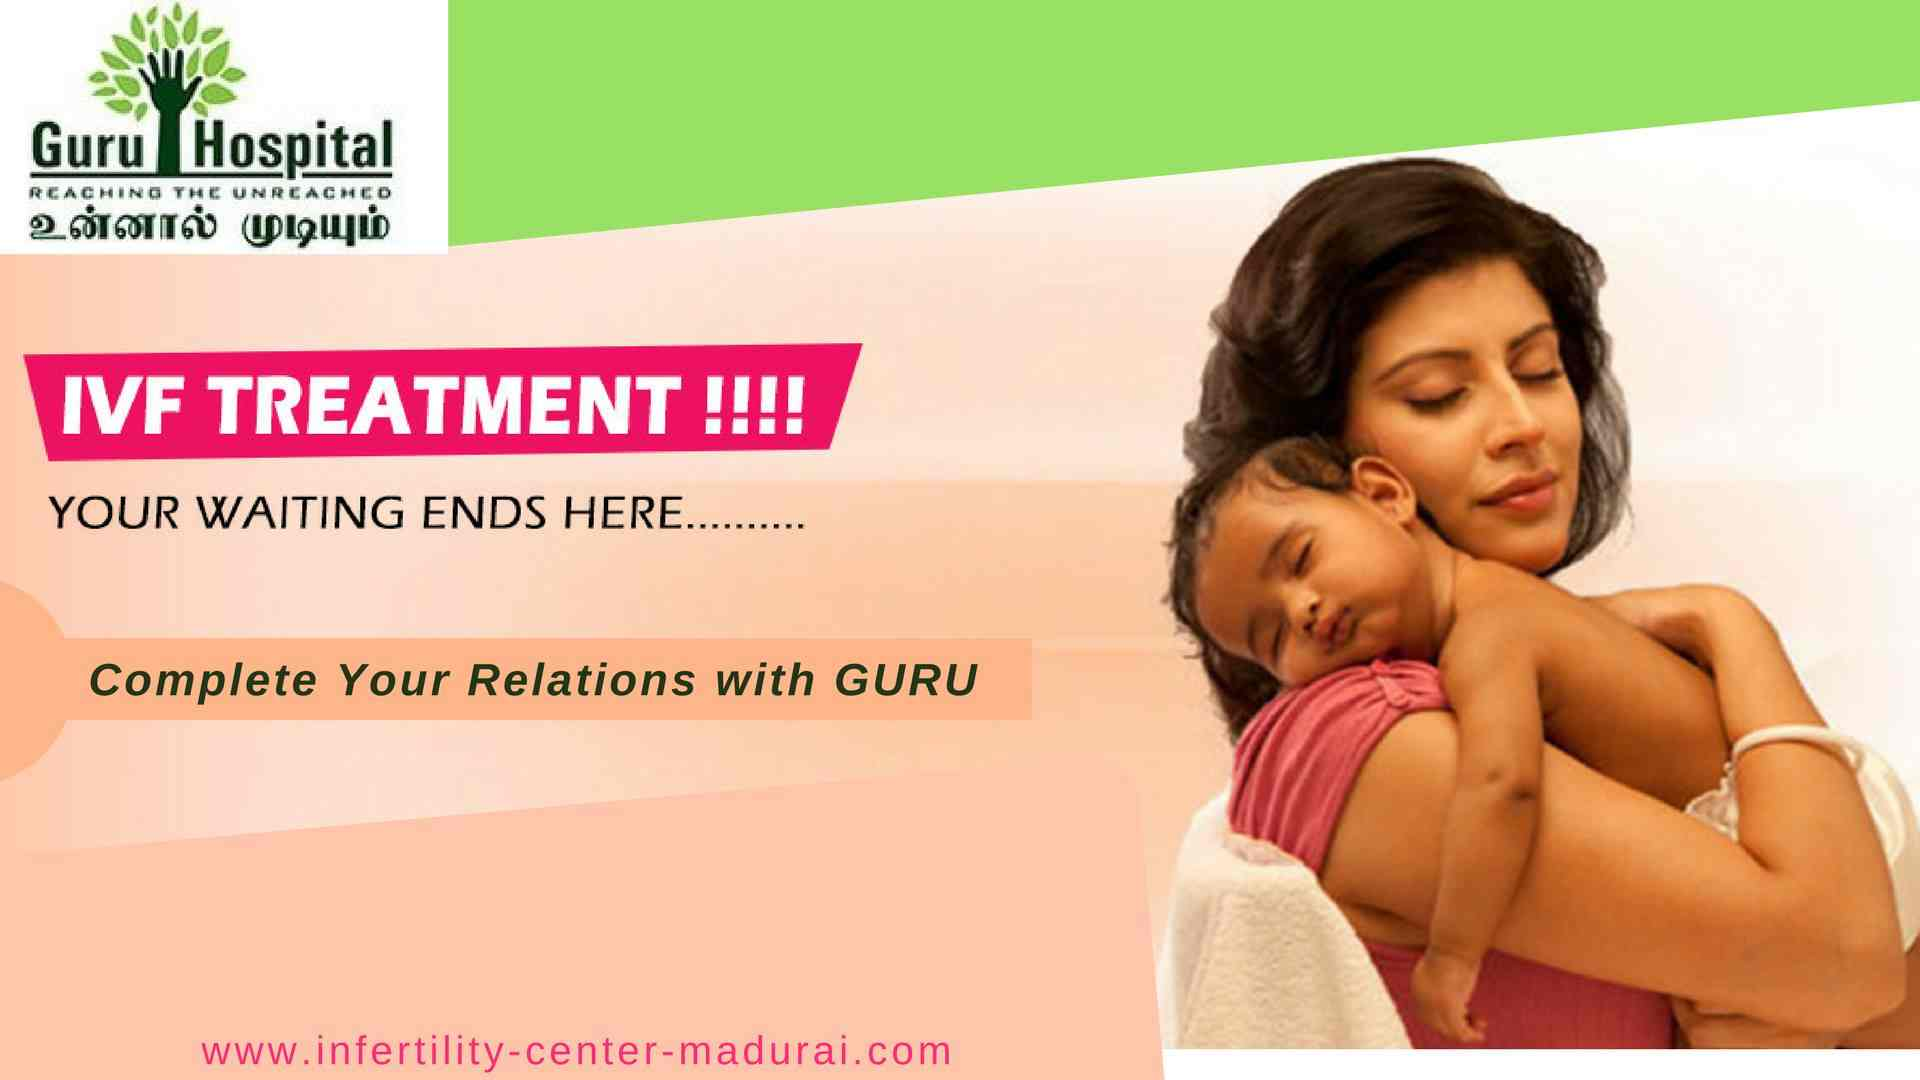 ivf treatment in madurai, tamil nadu, india